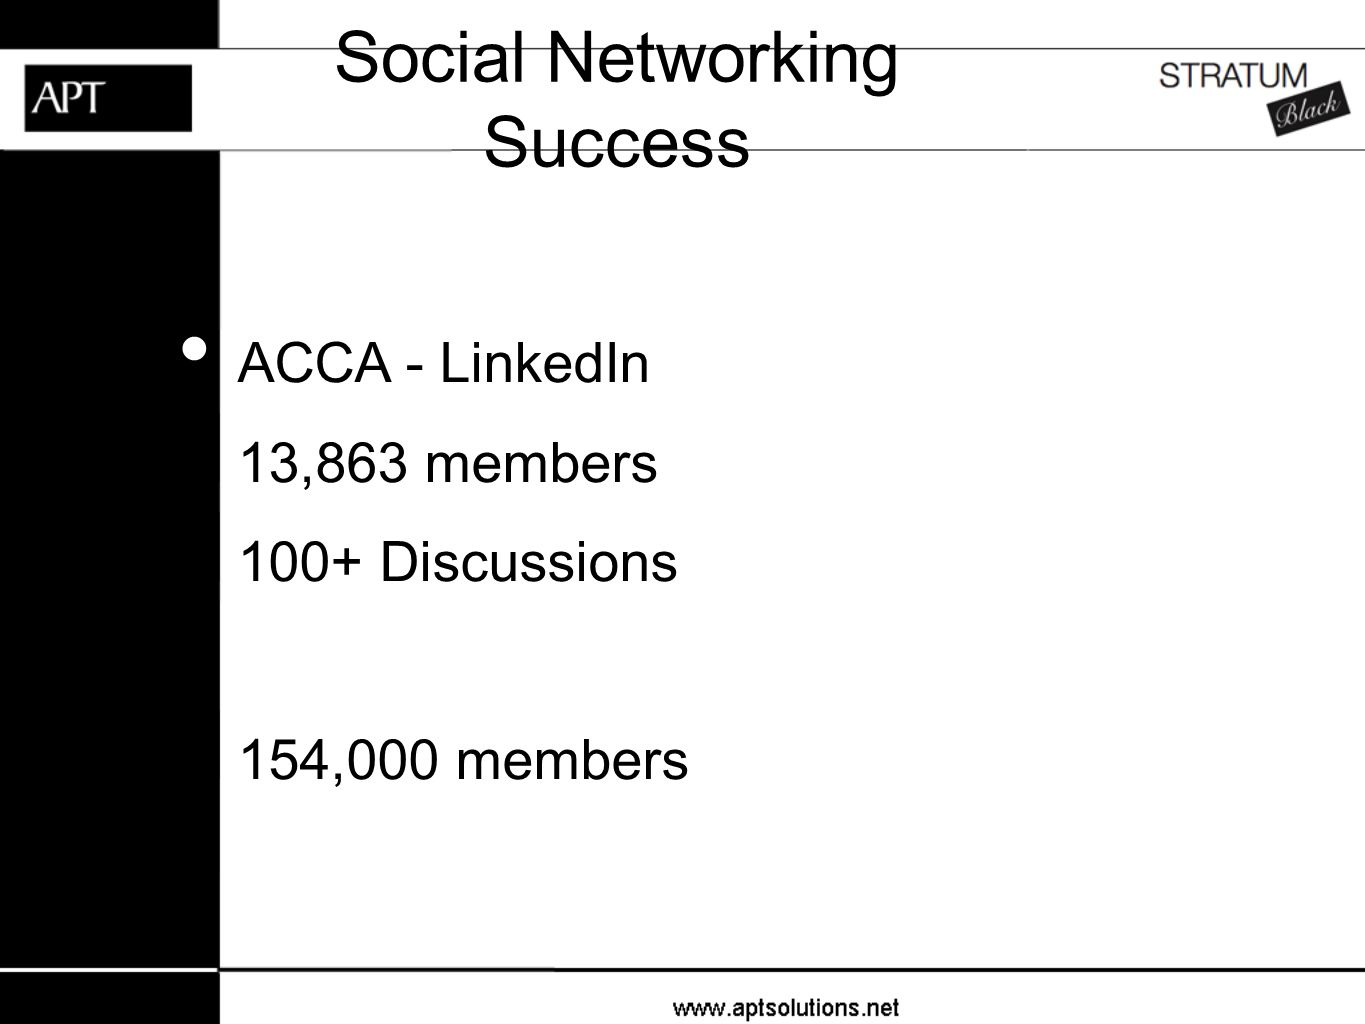 Social Networking Success ACCA - LinkedIn ➡ 13,863 members ➡ 100+ Discussions ➡ 154,000 members